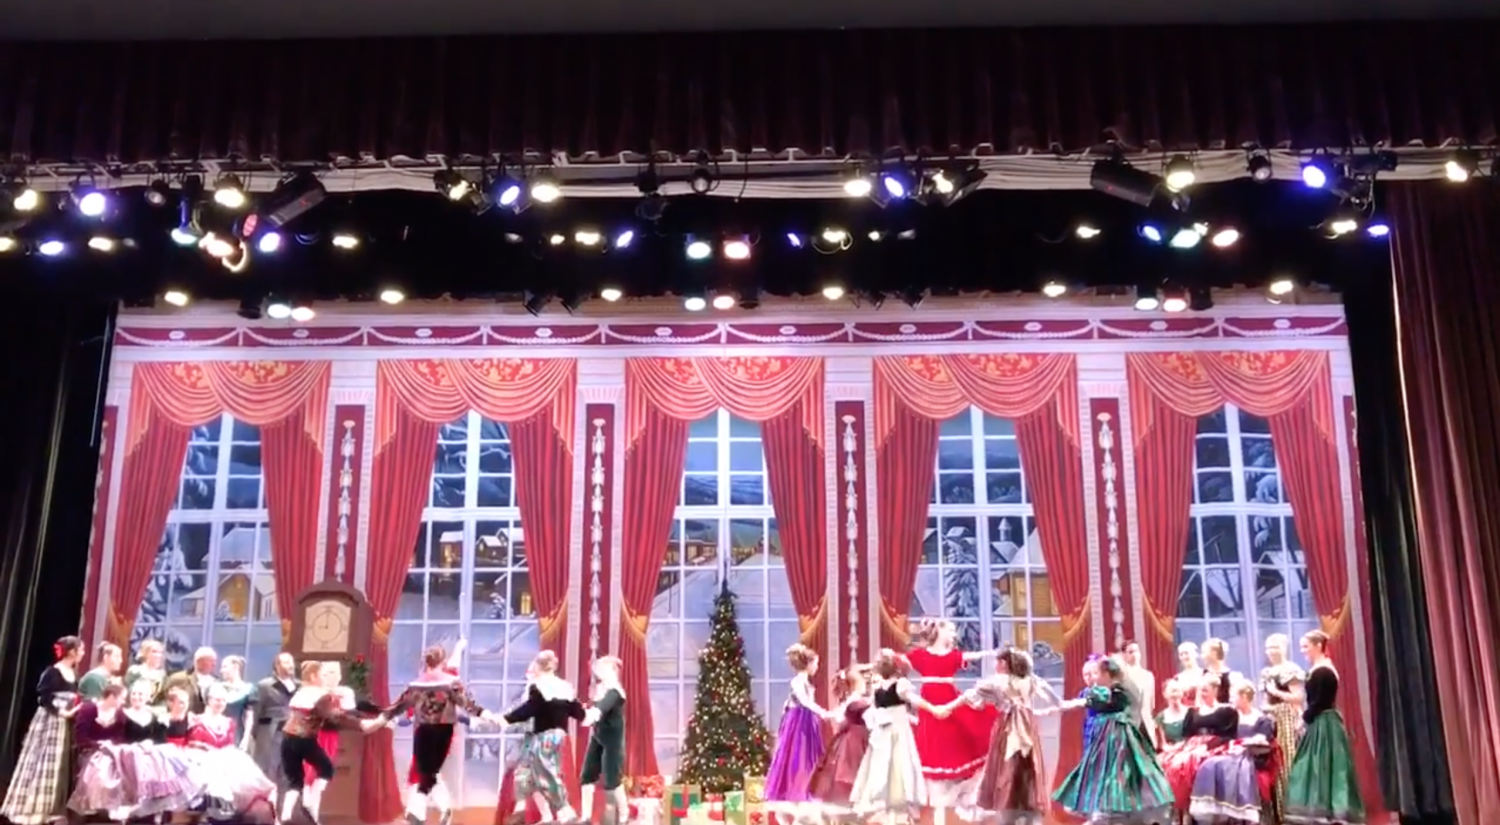 Westport Academy of Dance hosts its annual production of the Nutcracker